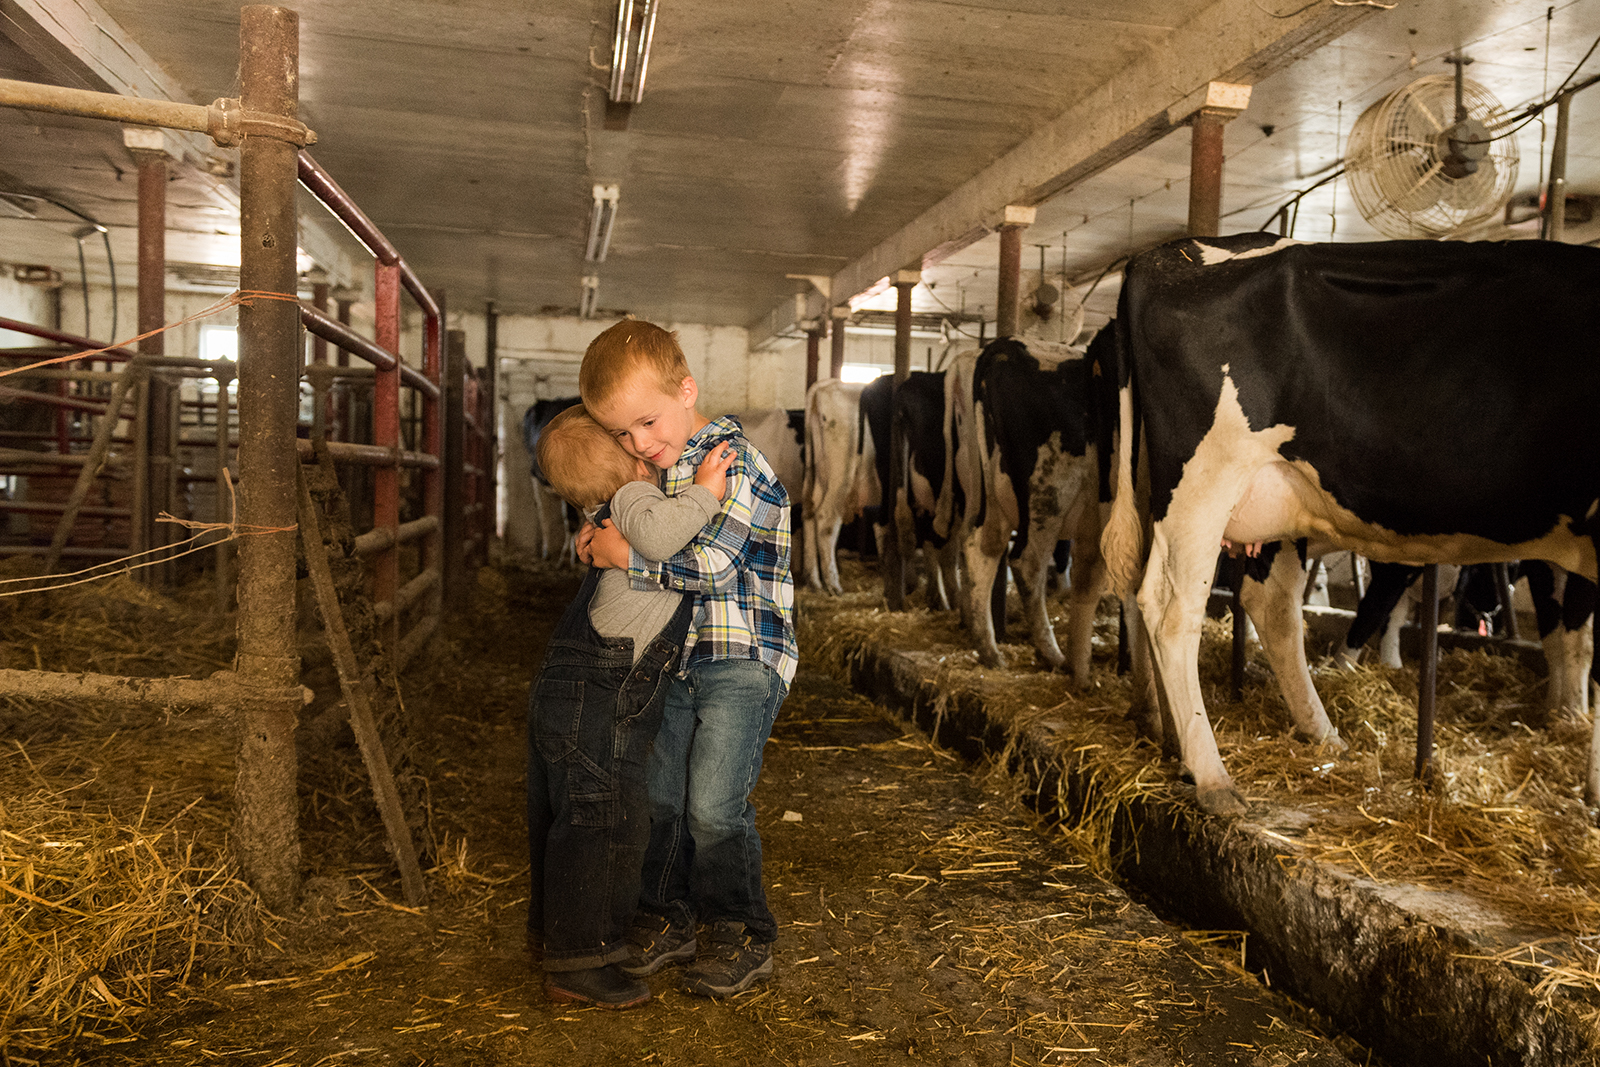 Two little boys hug in the milking barn with cows in the background.